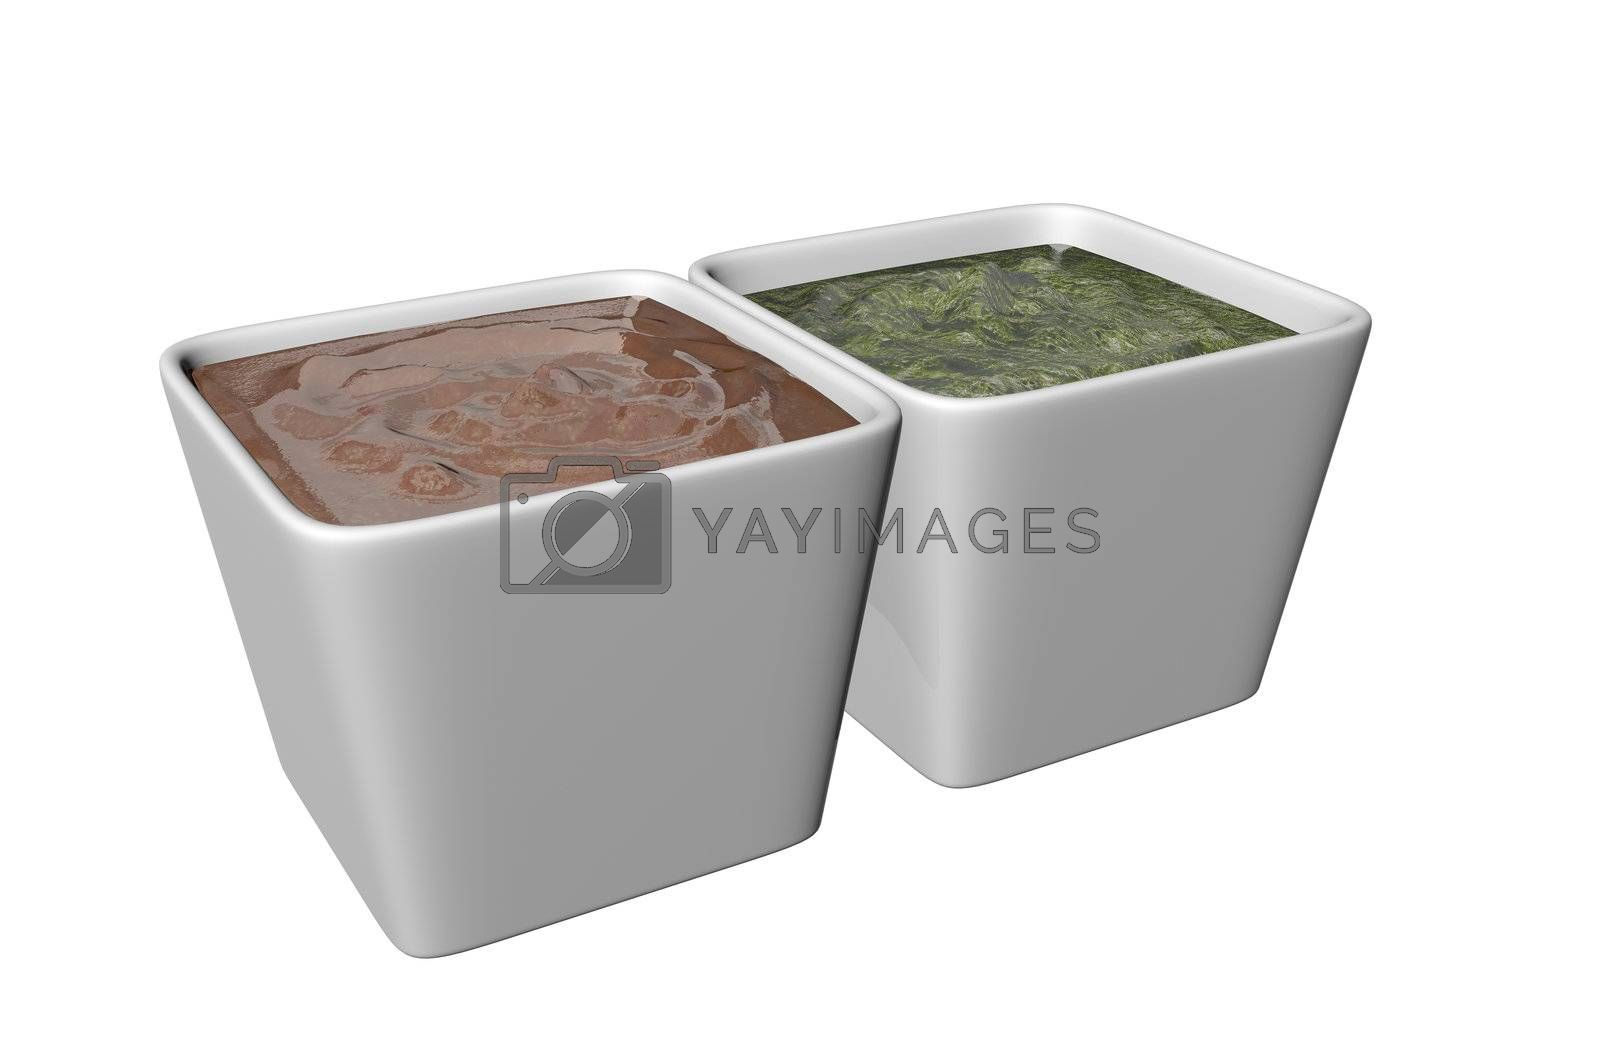 Ceramic square shaped dipping bowls with brown and green sauces, 3D illustration, isolated against a white background